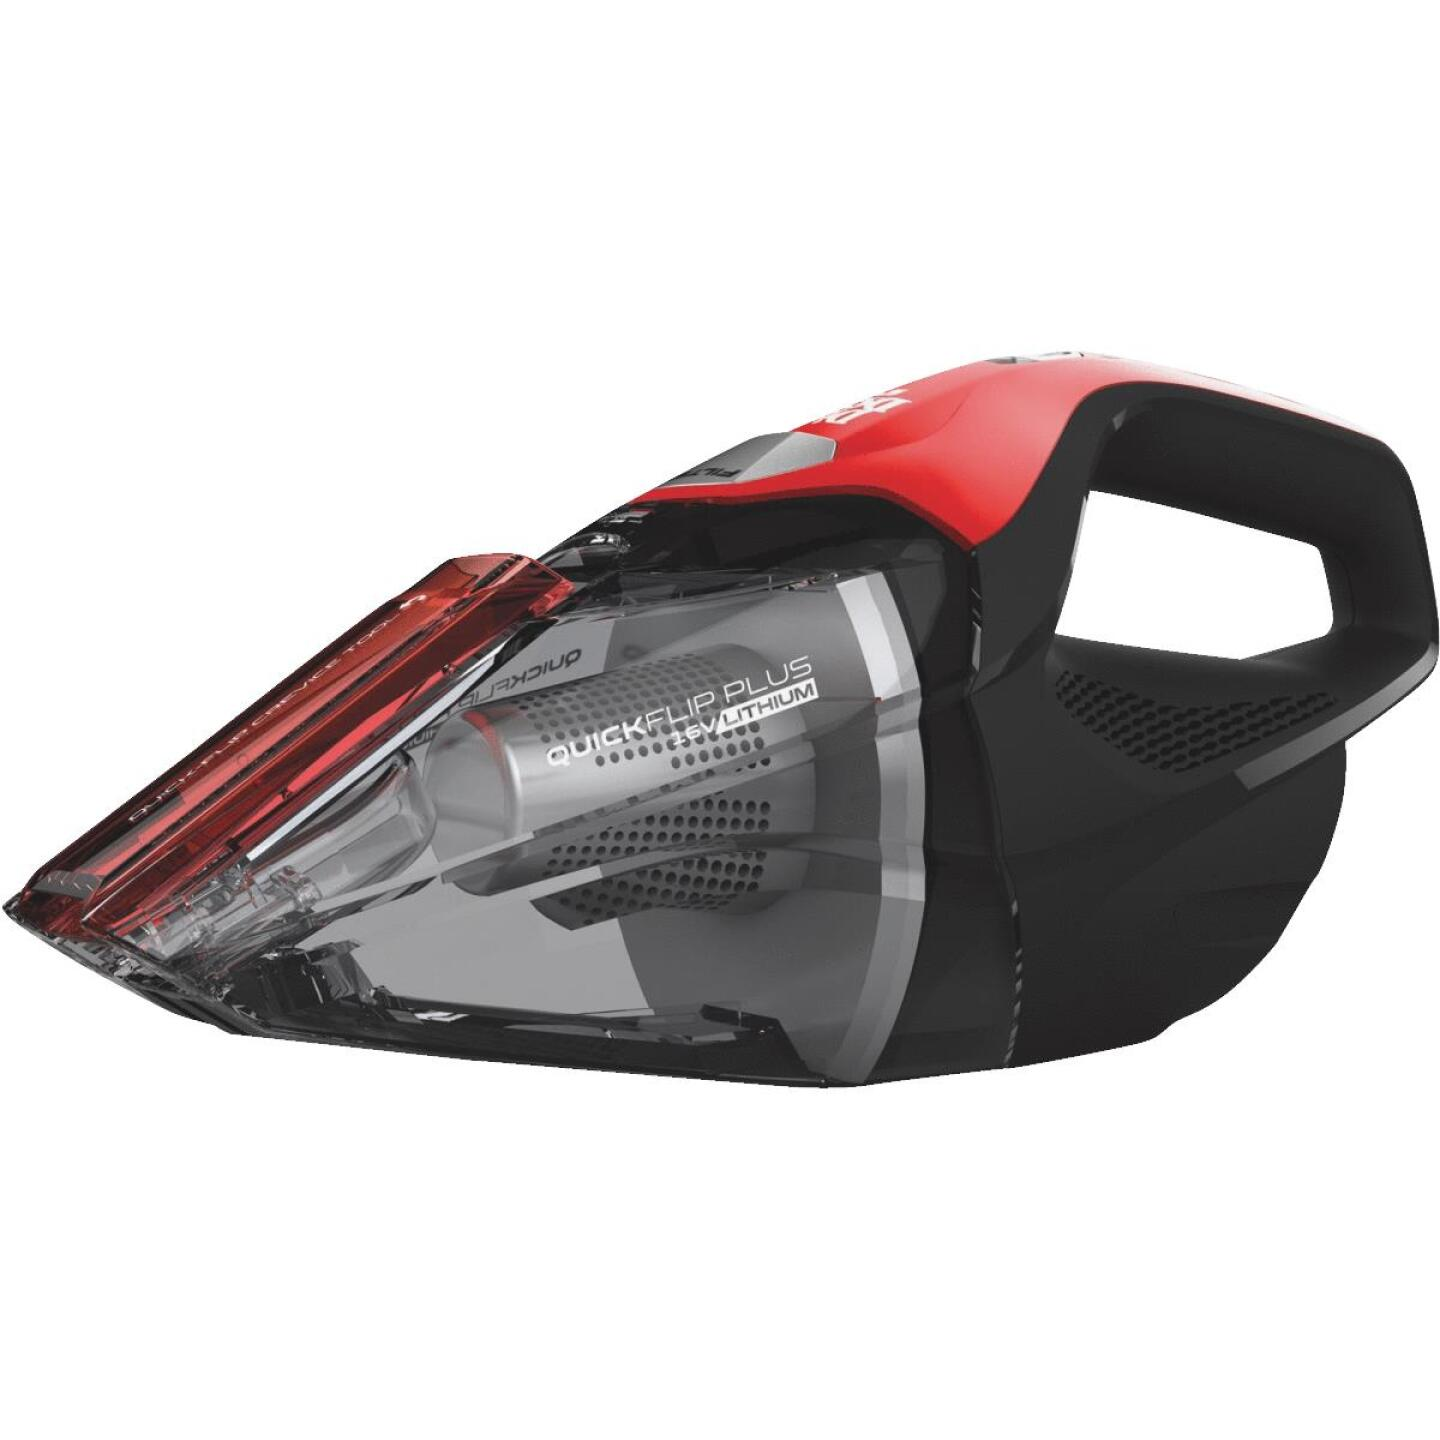 Dirt Devil QuickFlip Plus 16V Cordless Handheld Vacuum Cleaner Image 1